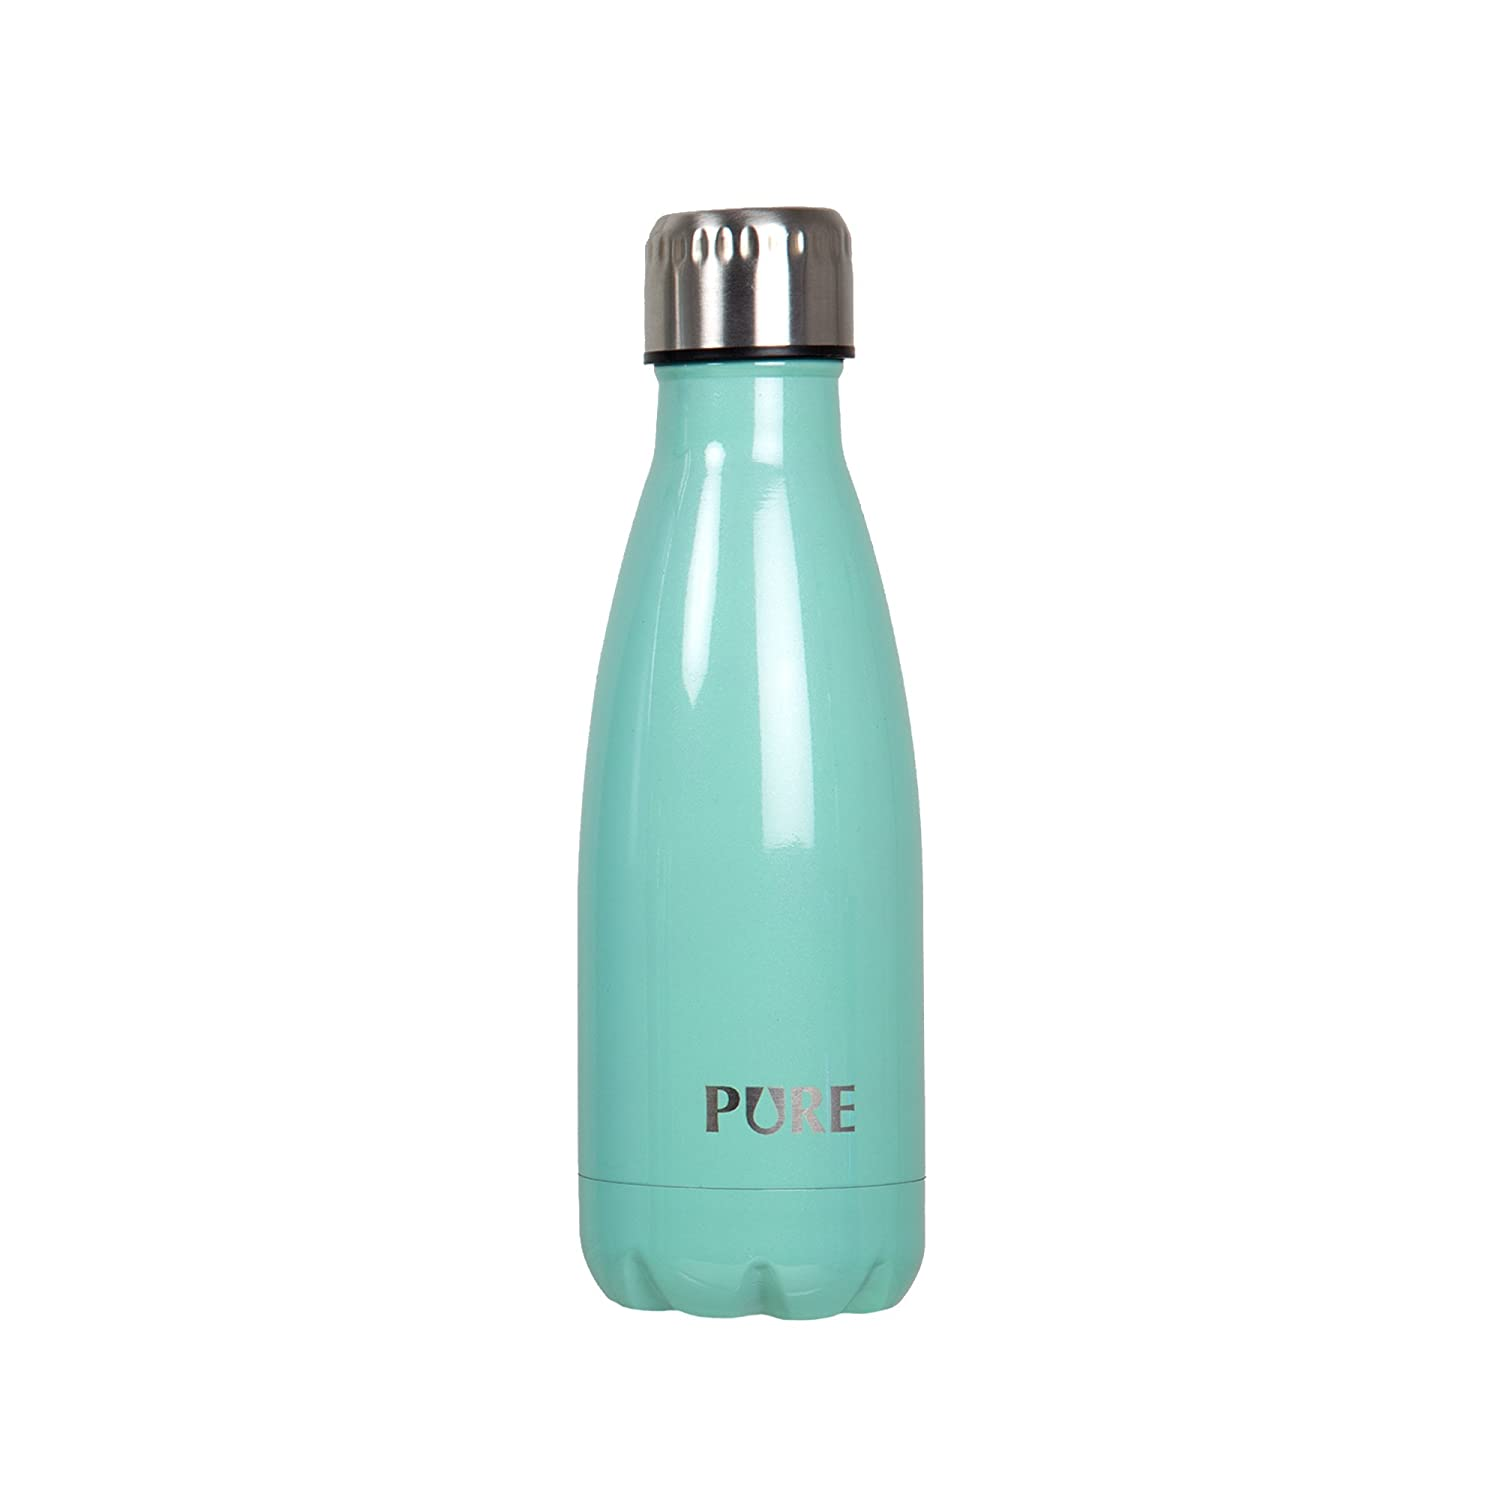 PURE Drinkware, Electroplated Insulated Bottle, 12 oz, Blue 70527DC-BU